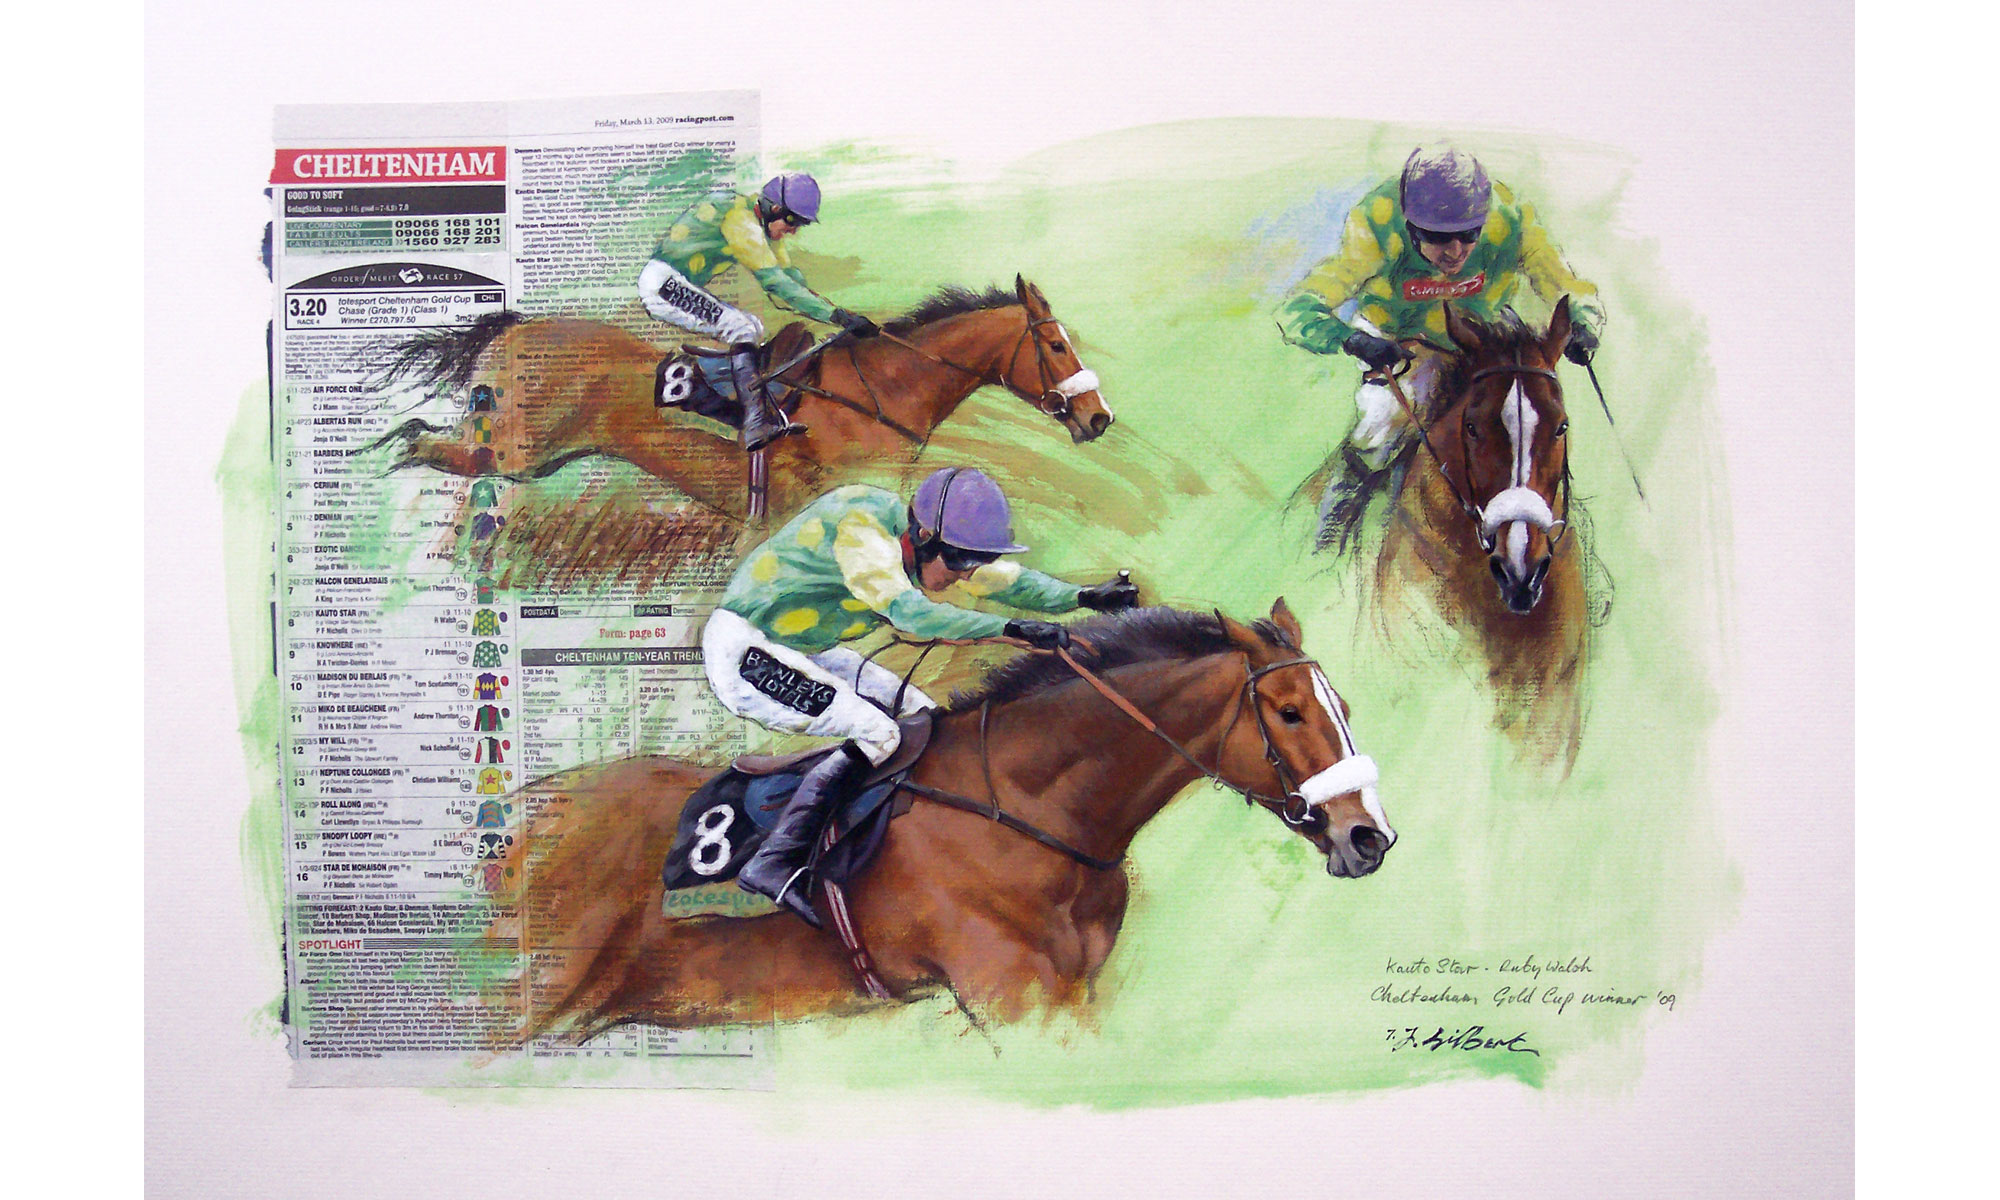 Kauto Star Horse Racing Painting by Terence J Gilbert Oil on Board